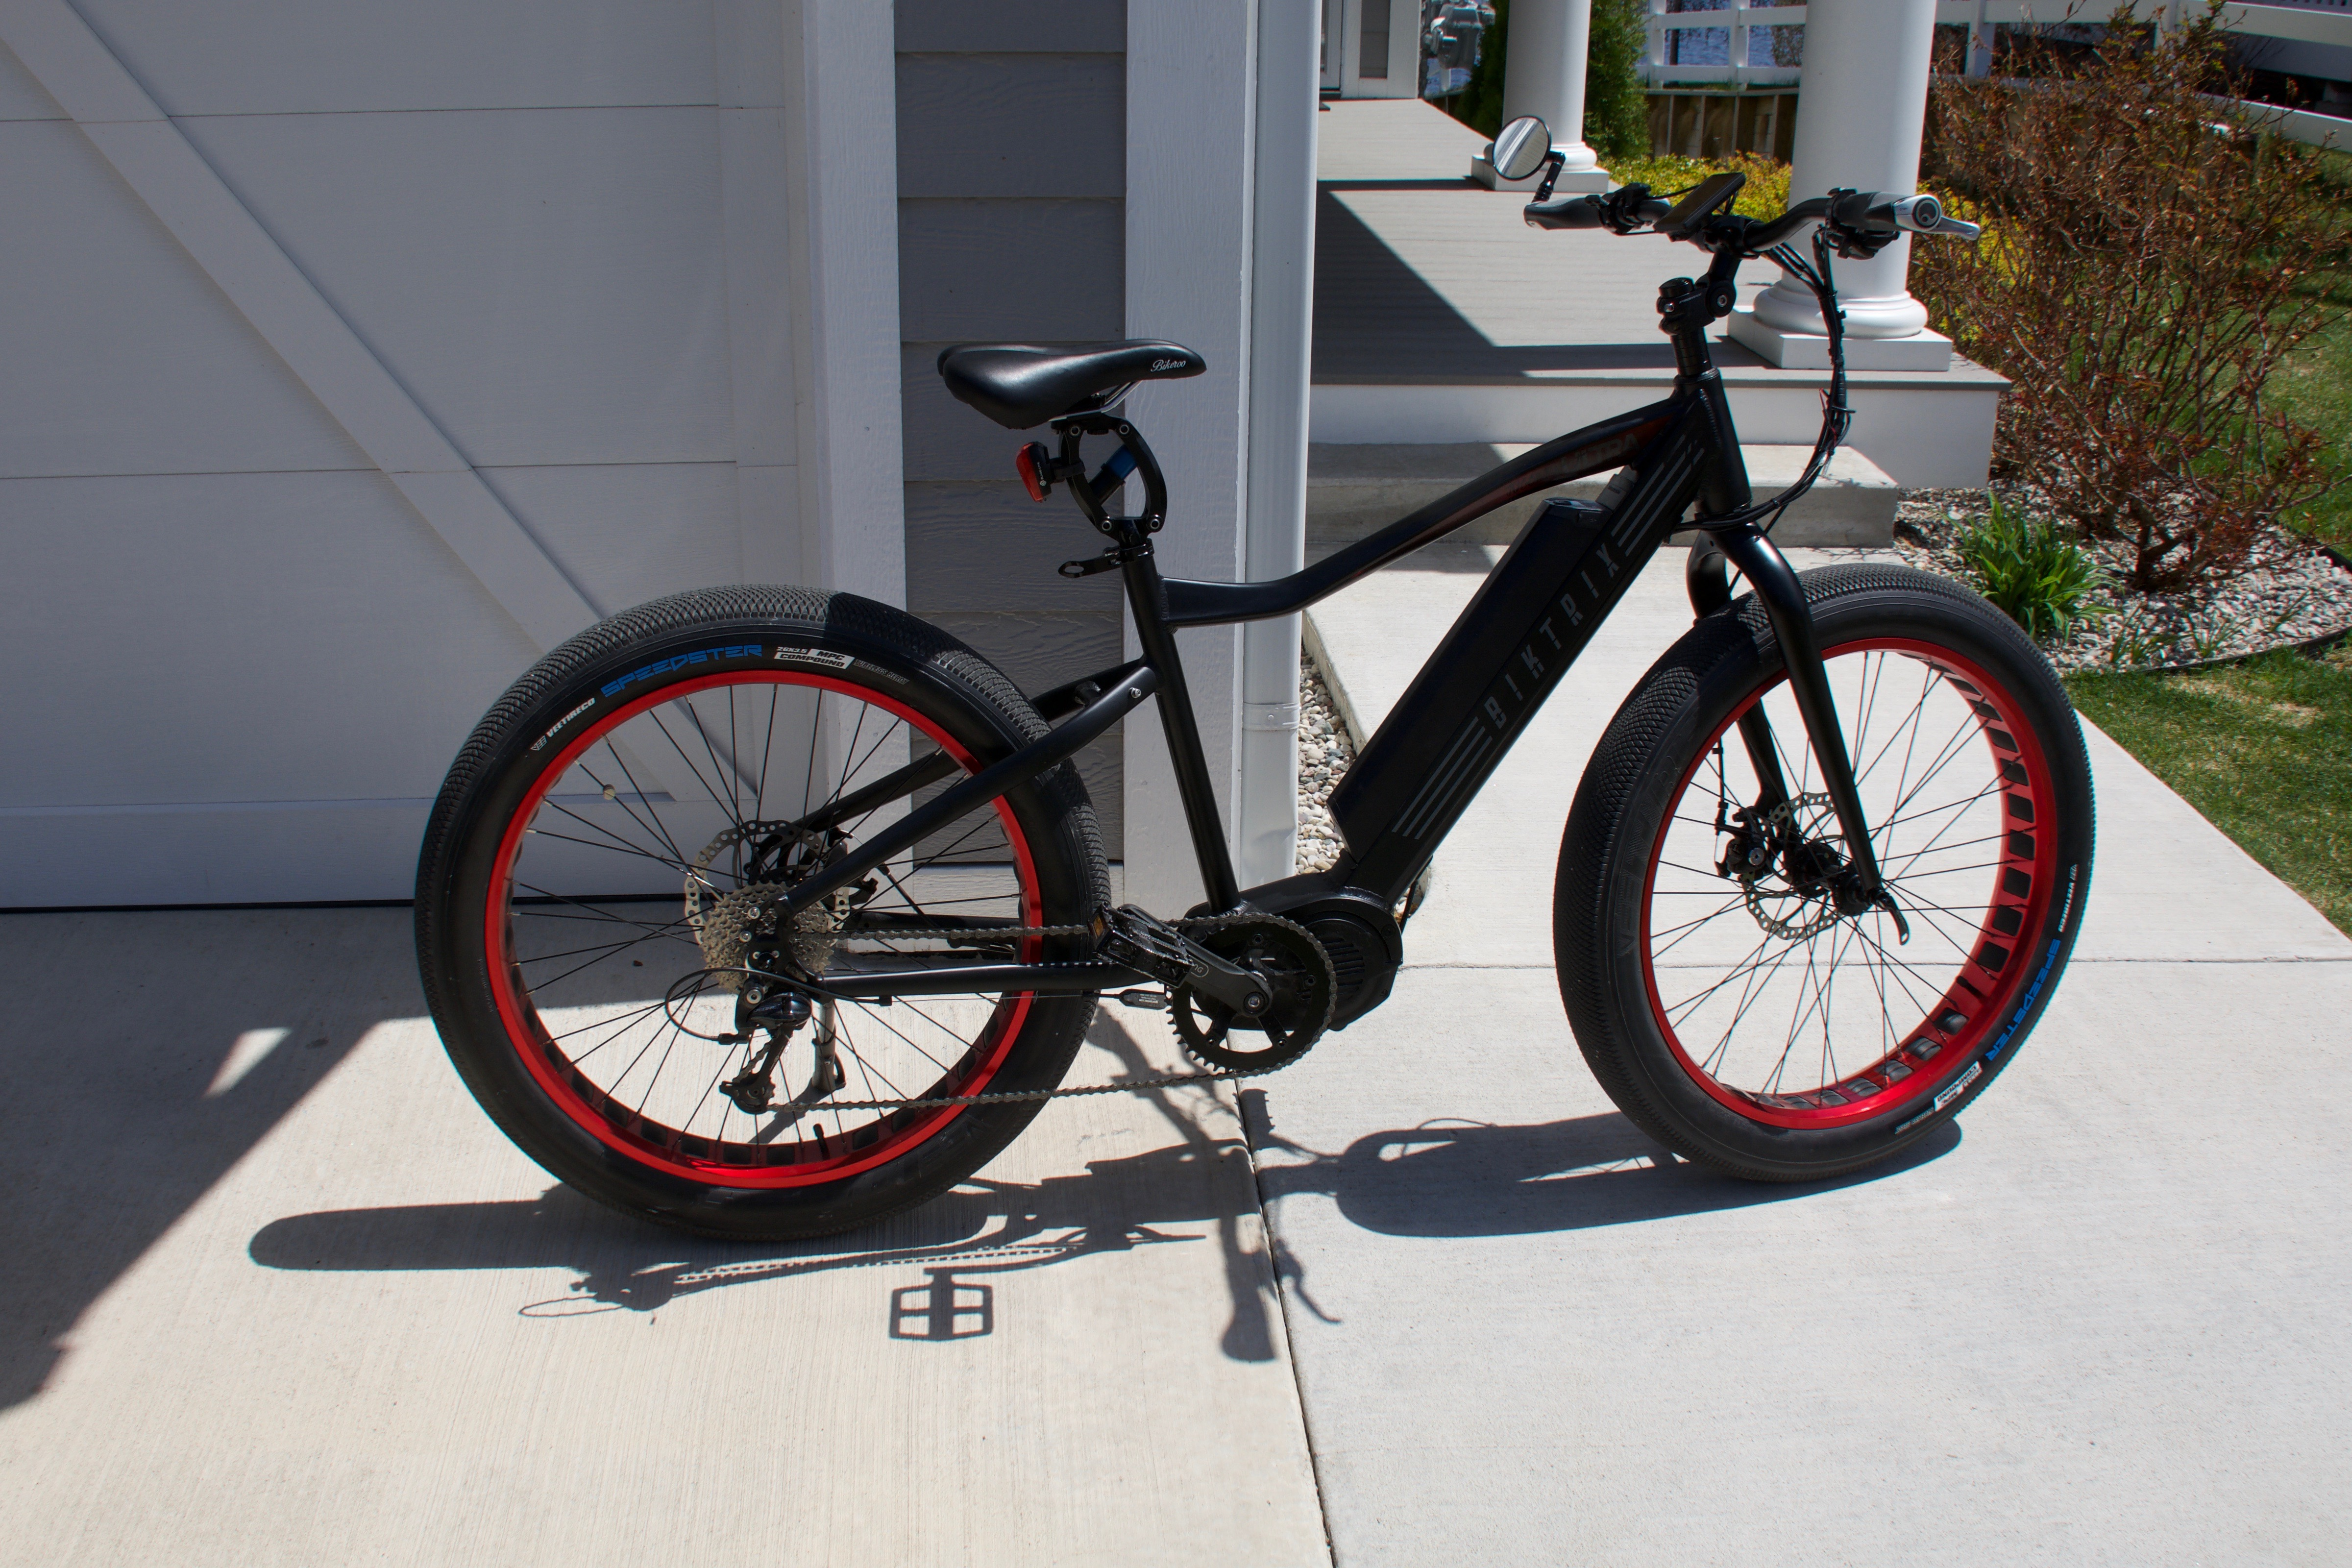 Front fork and tire modification on 2018 Rad Rover- Feasible mod for